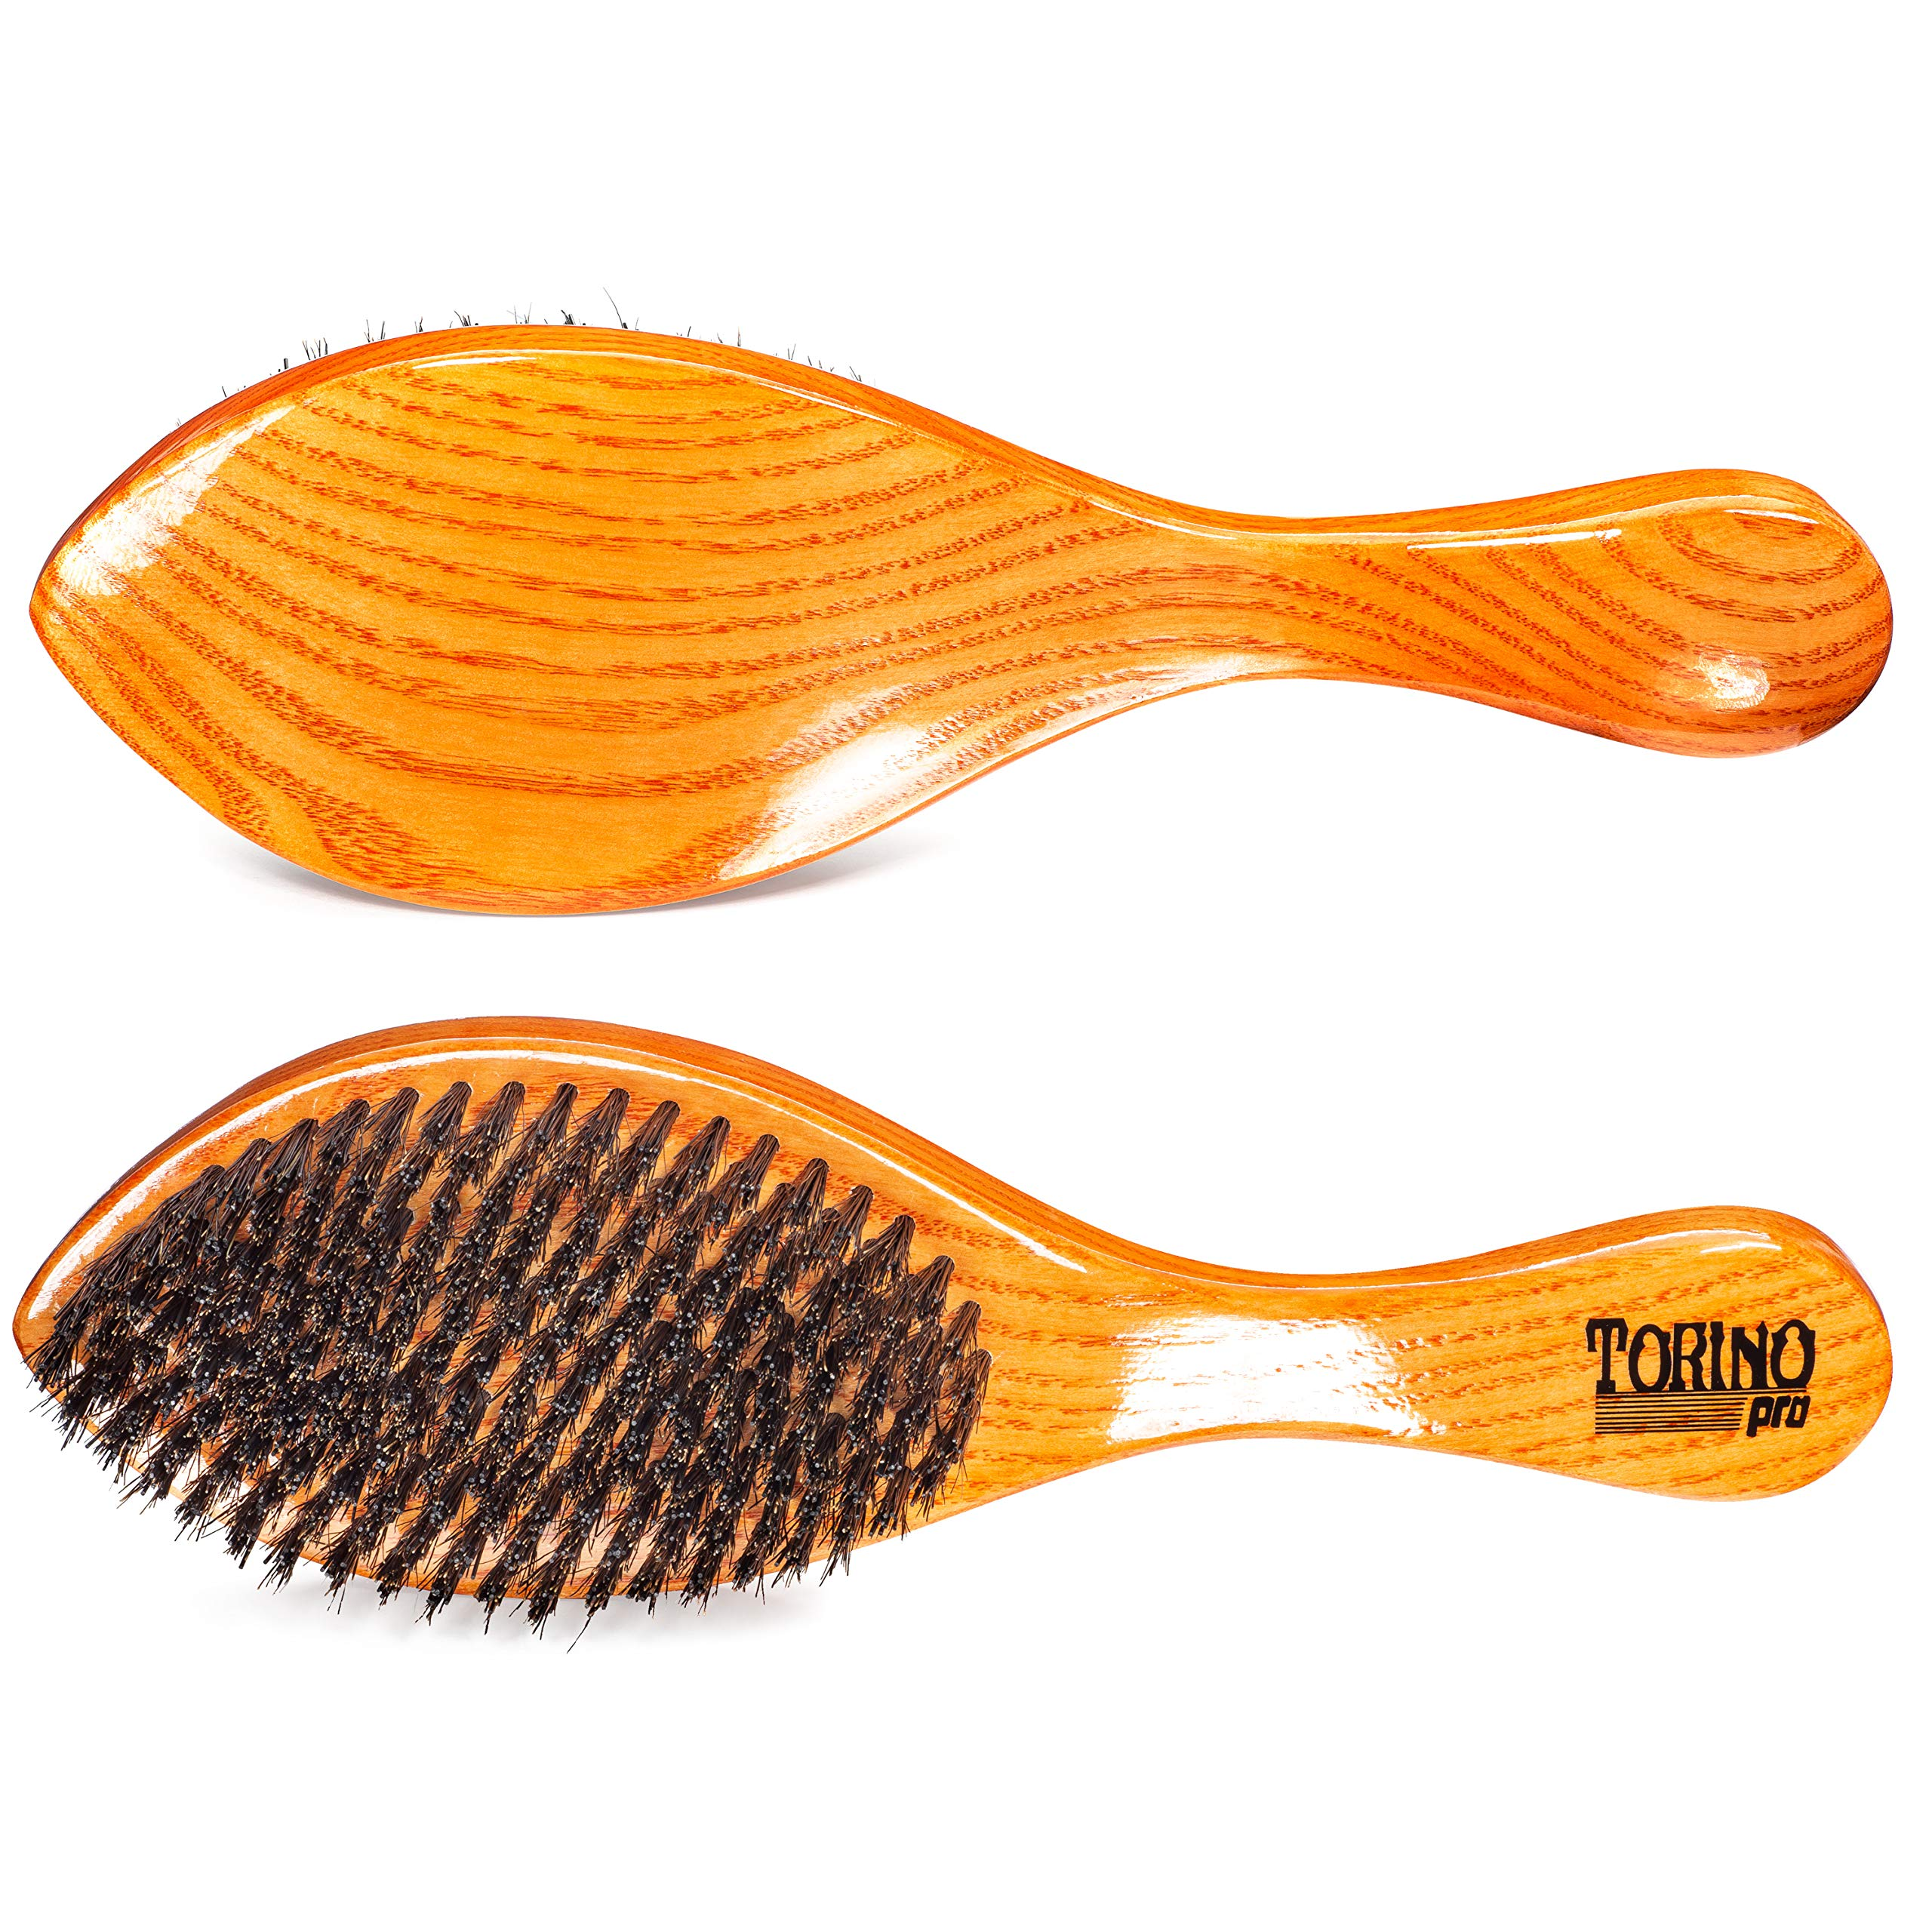 Torino Pro Medium Hard Curve Wave Brush By Brush King - #1670-360 Curved Medium Hard - Great for Wolfing - For 360 Waves